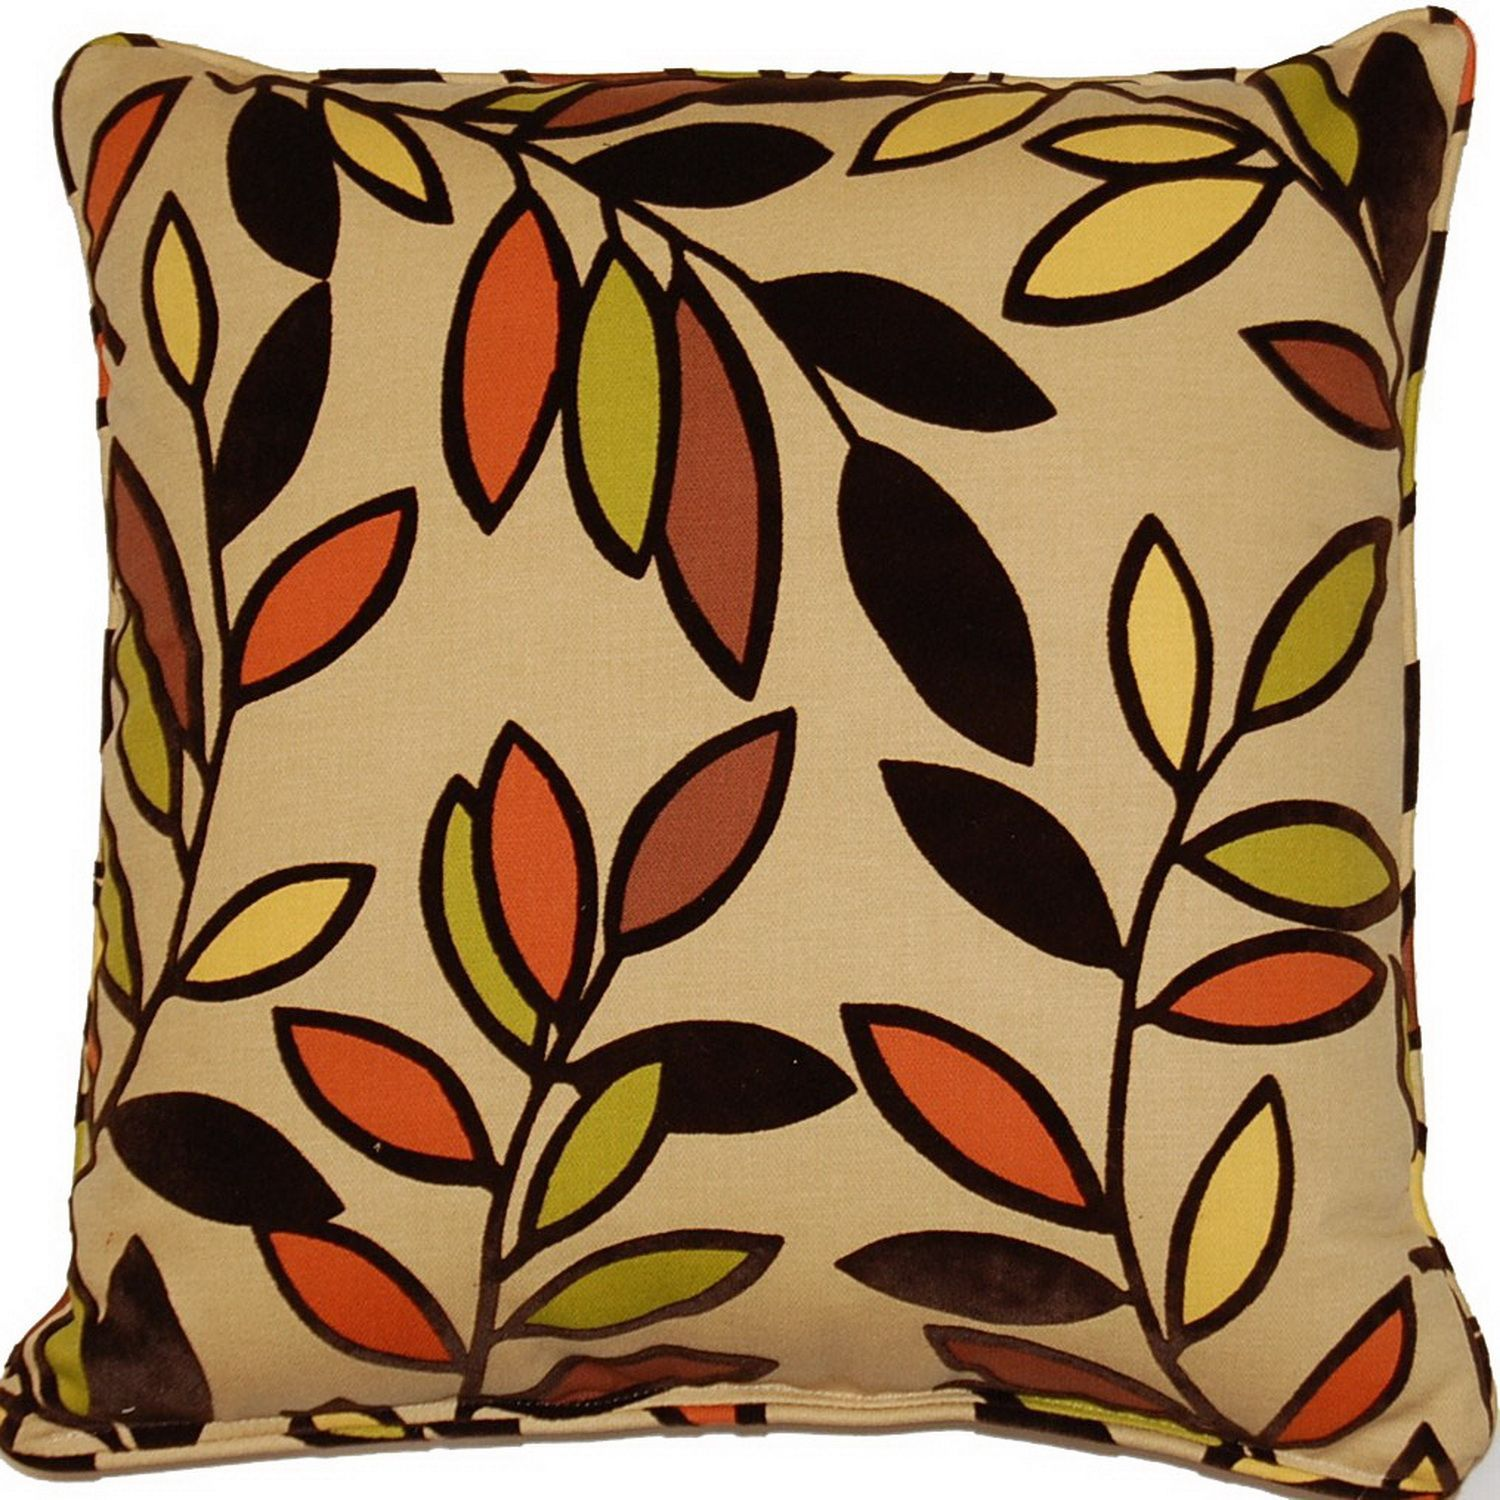 Excellent Fox Kirby Bitter 17 Inch Throw Pillows Set Of 2 Pillow Ocoug Best Dining Table And Chair Ideas Images Ocougorg